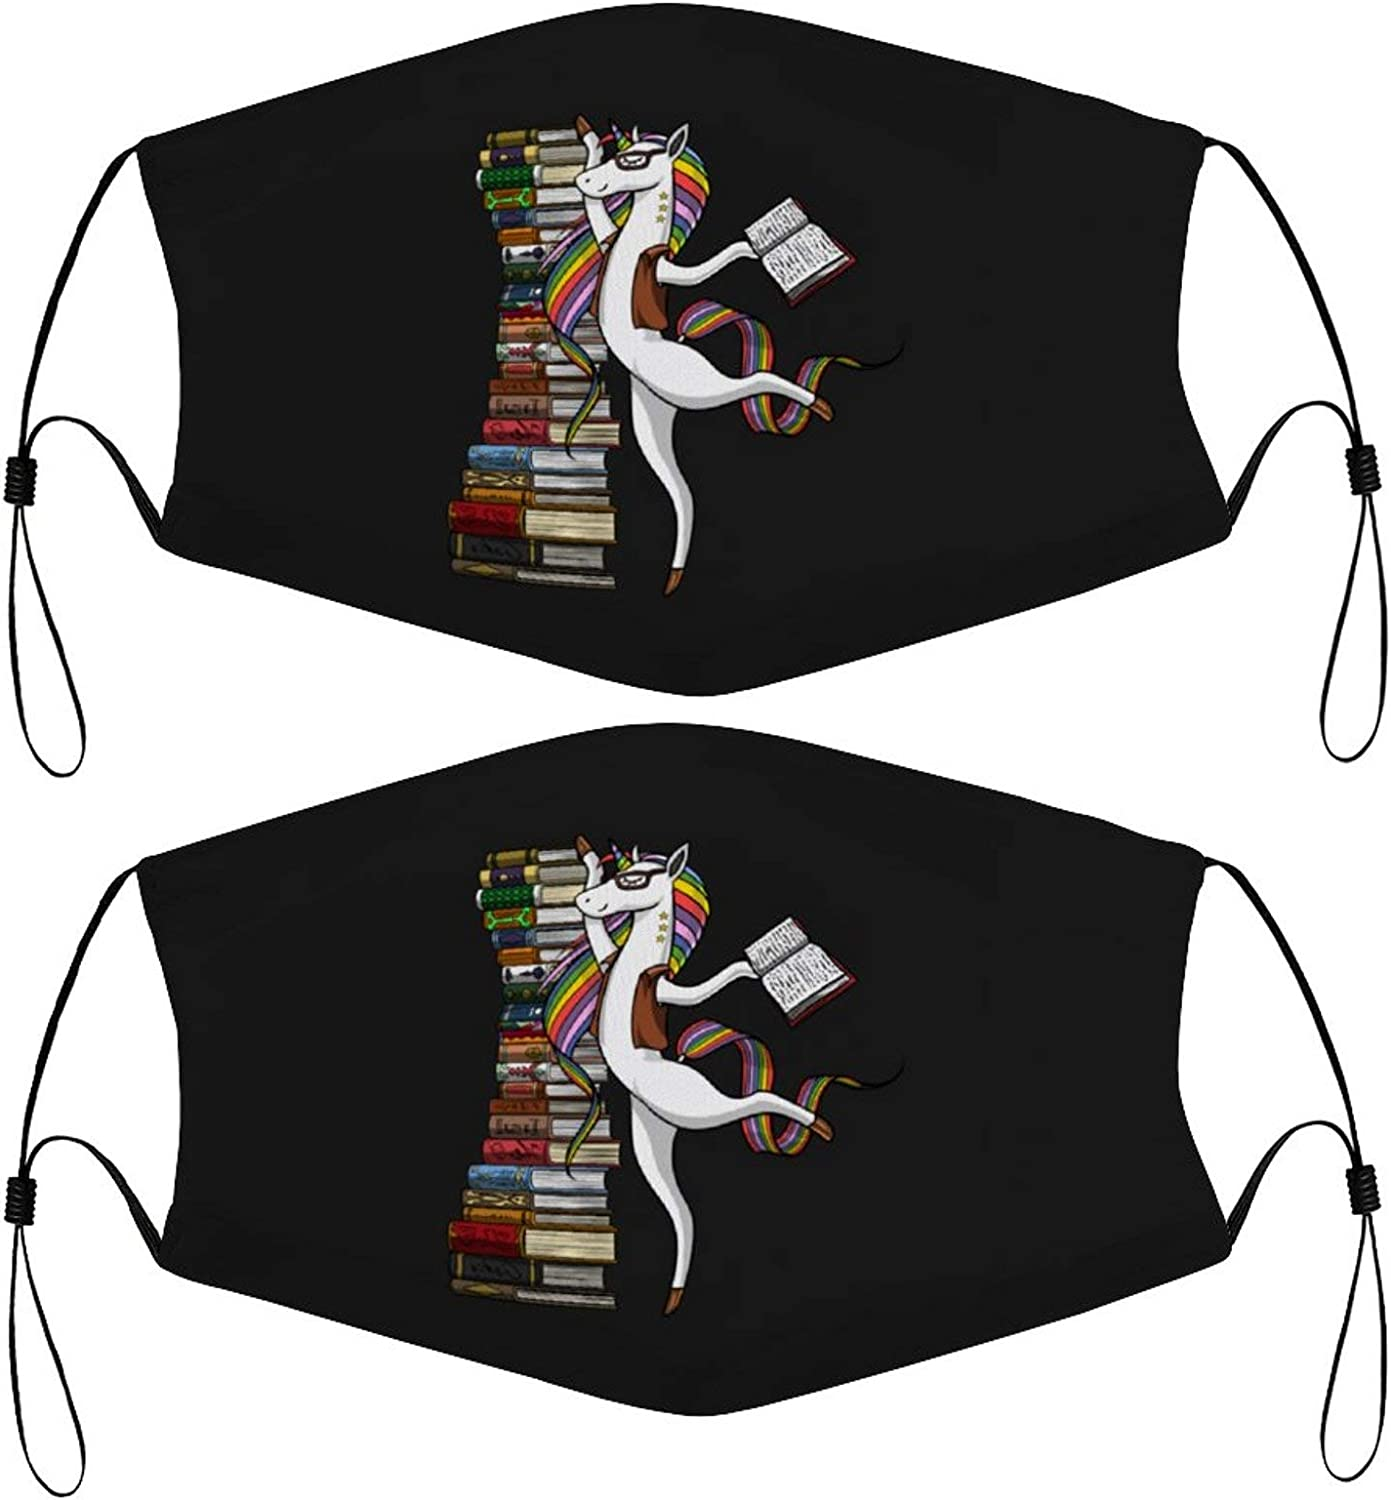 Unicorn Librarian Kids Face Mask Set of 2 with 4 Filters Washable Reusable Adjustable Black Cloth Bandanas Scarf Neck Gaiters for Adult Men Women Fashion Designs